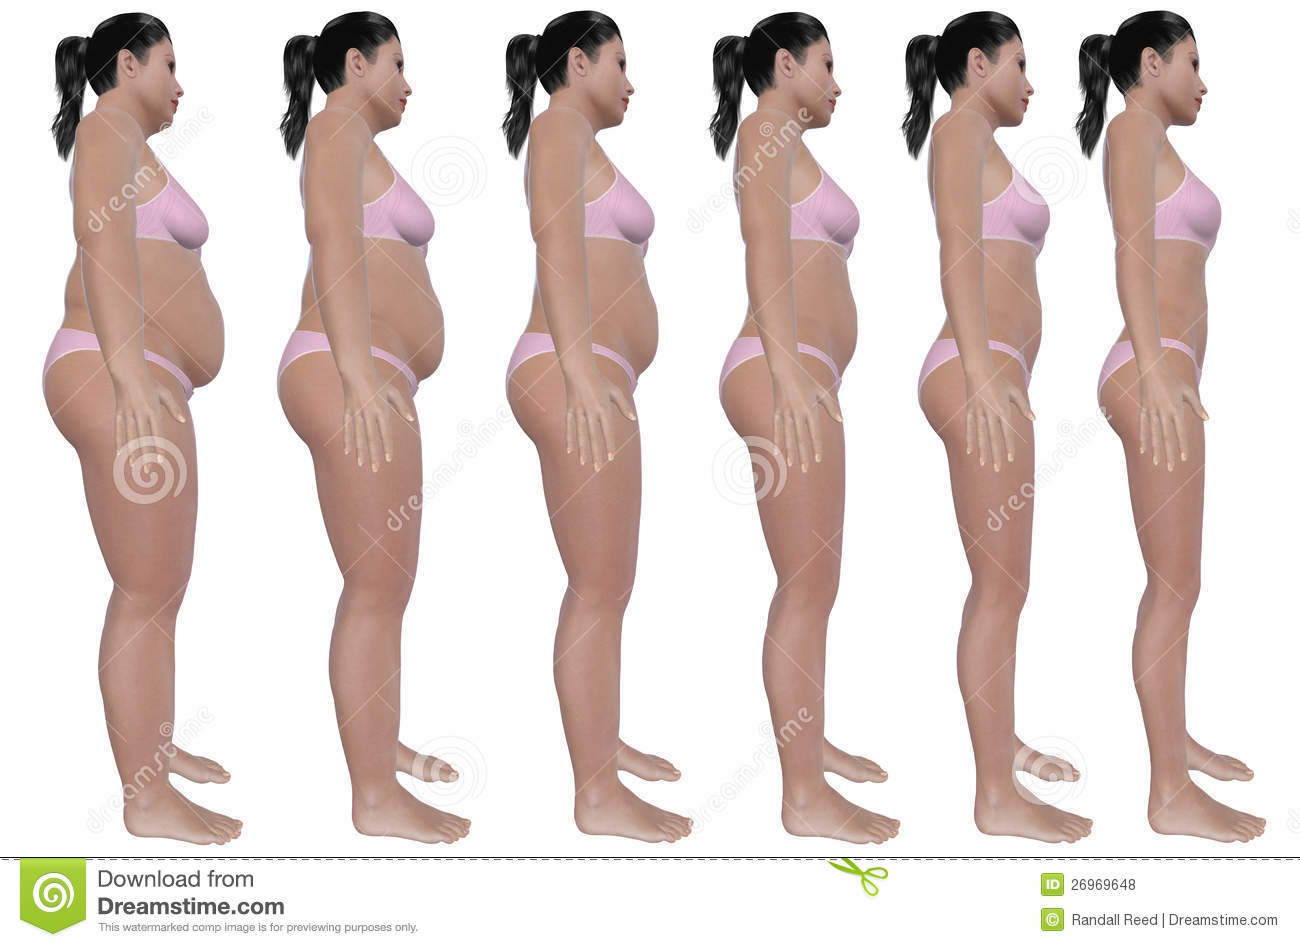 Genetics test for weight loss image 2